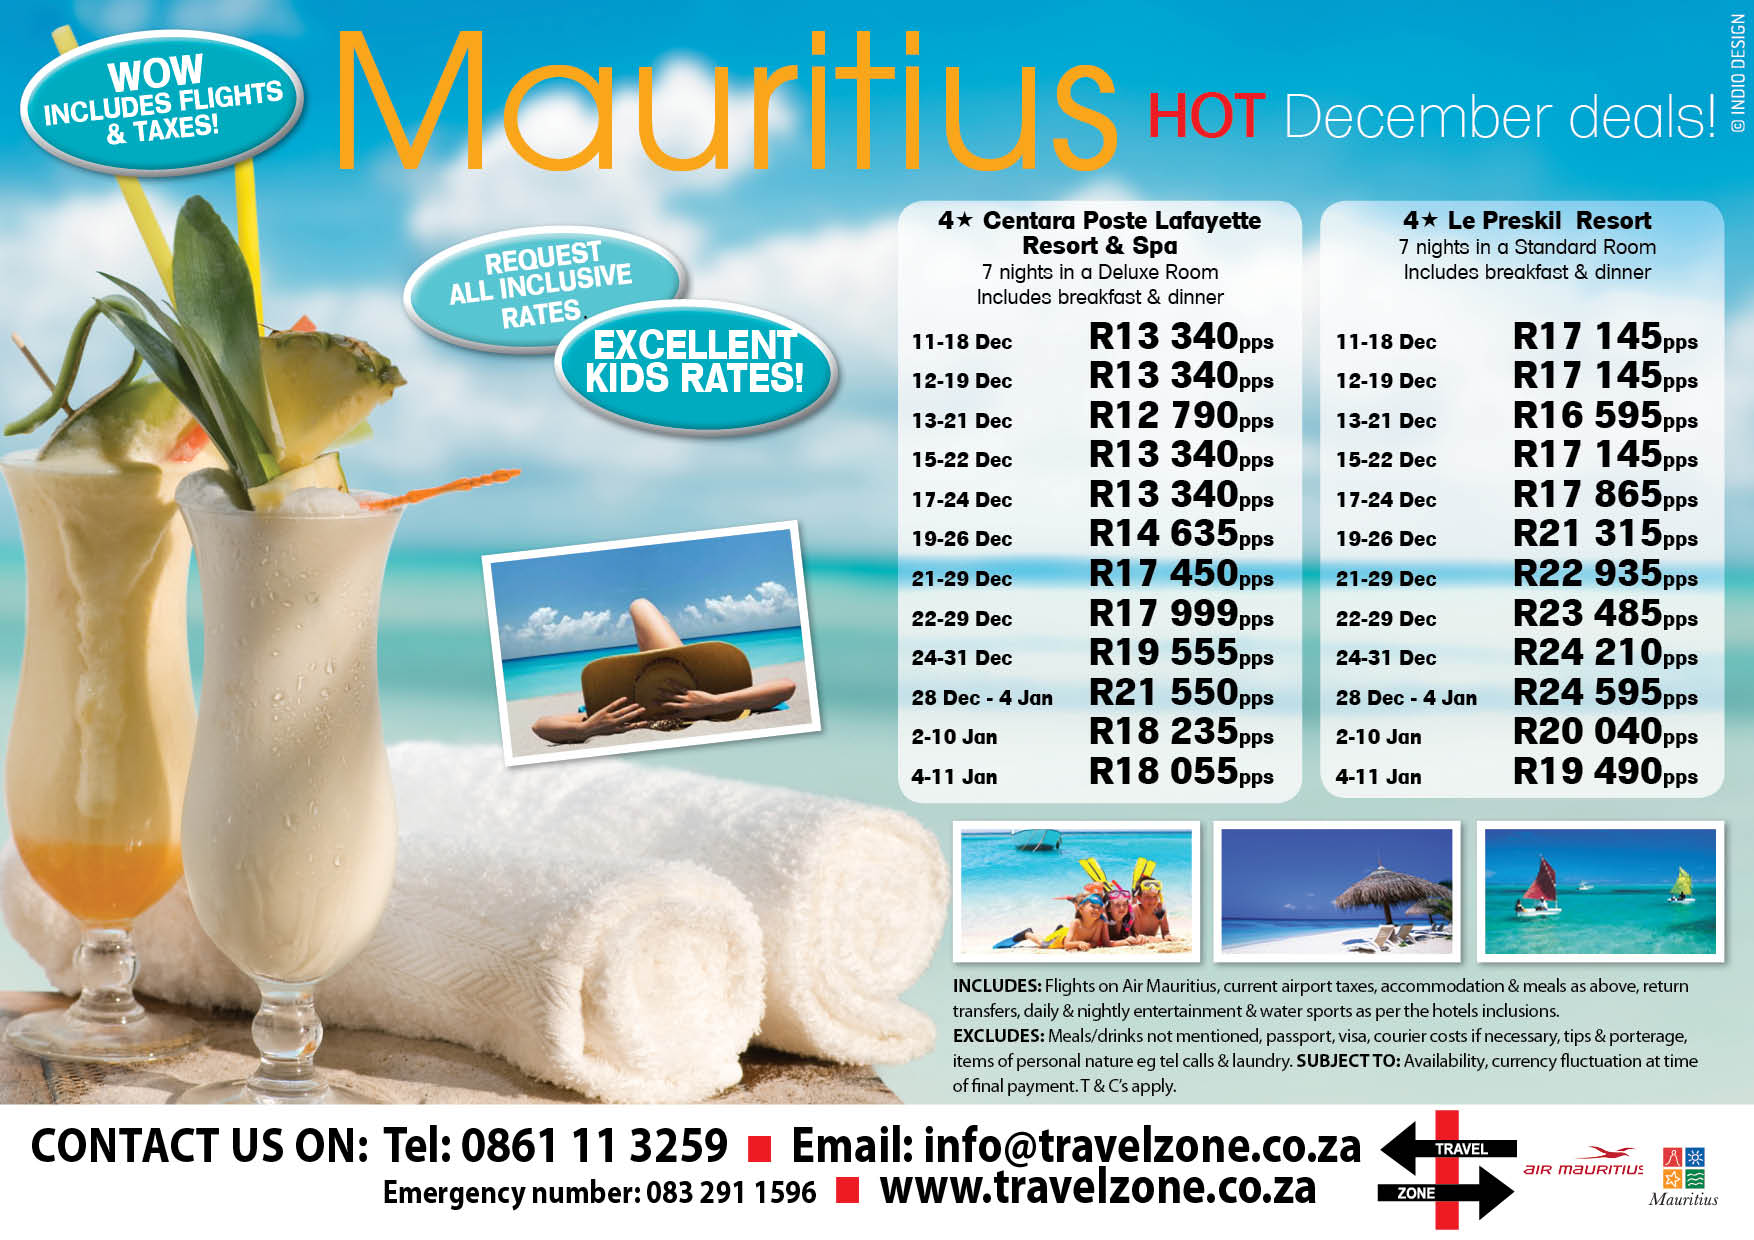 Mauritius 4* hot December deals